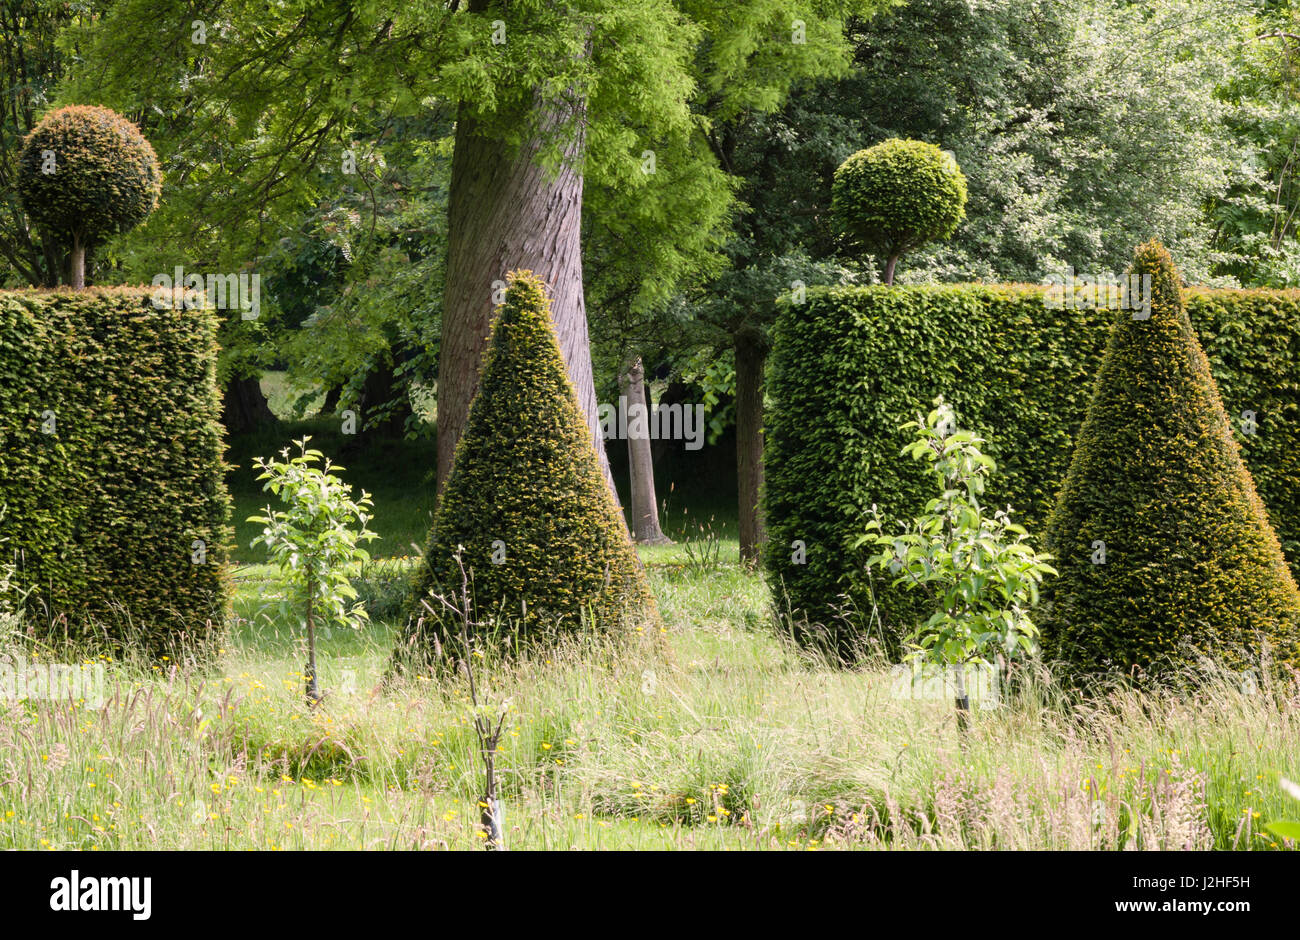 Erddig Hall gardens, Wrexham, Wales, UK. Clipped yew topiary in the restored garden - Stock Image